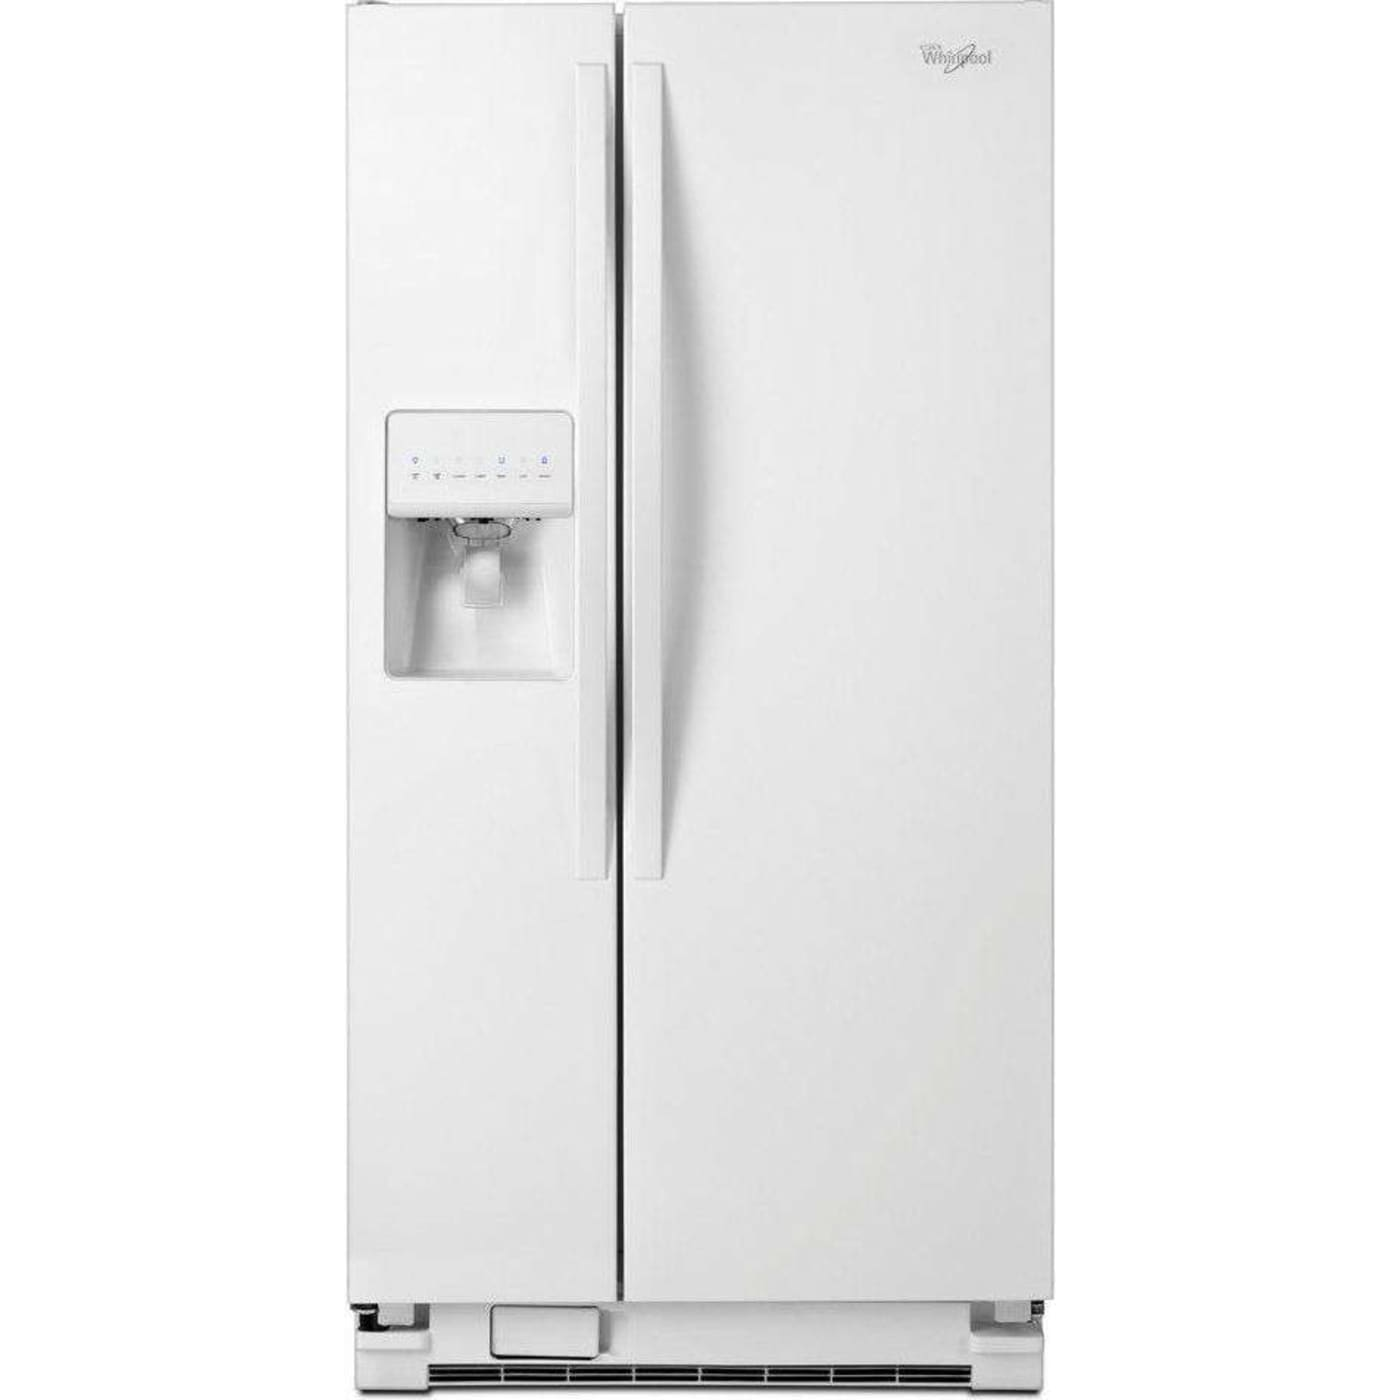 Wrs322fdaw By Whirlpool Side By Side Refrigerators